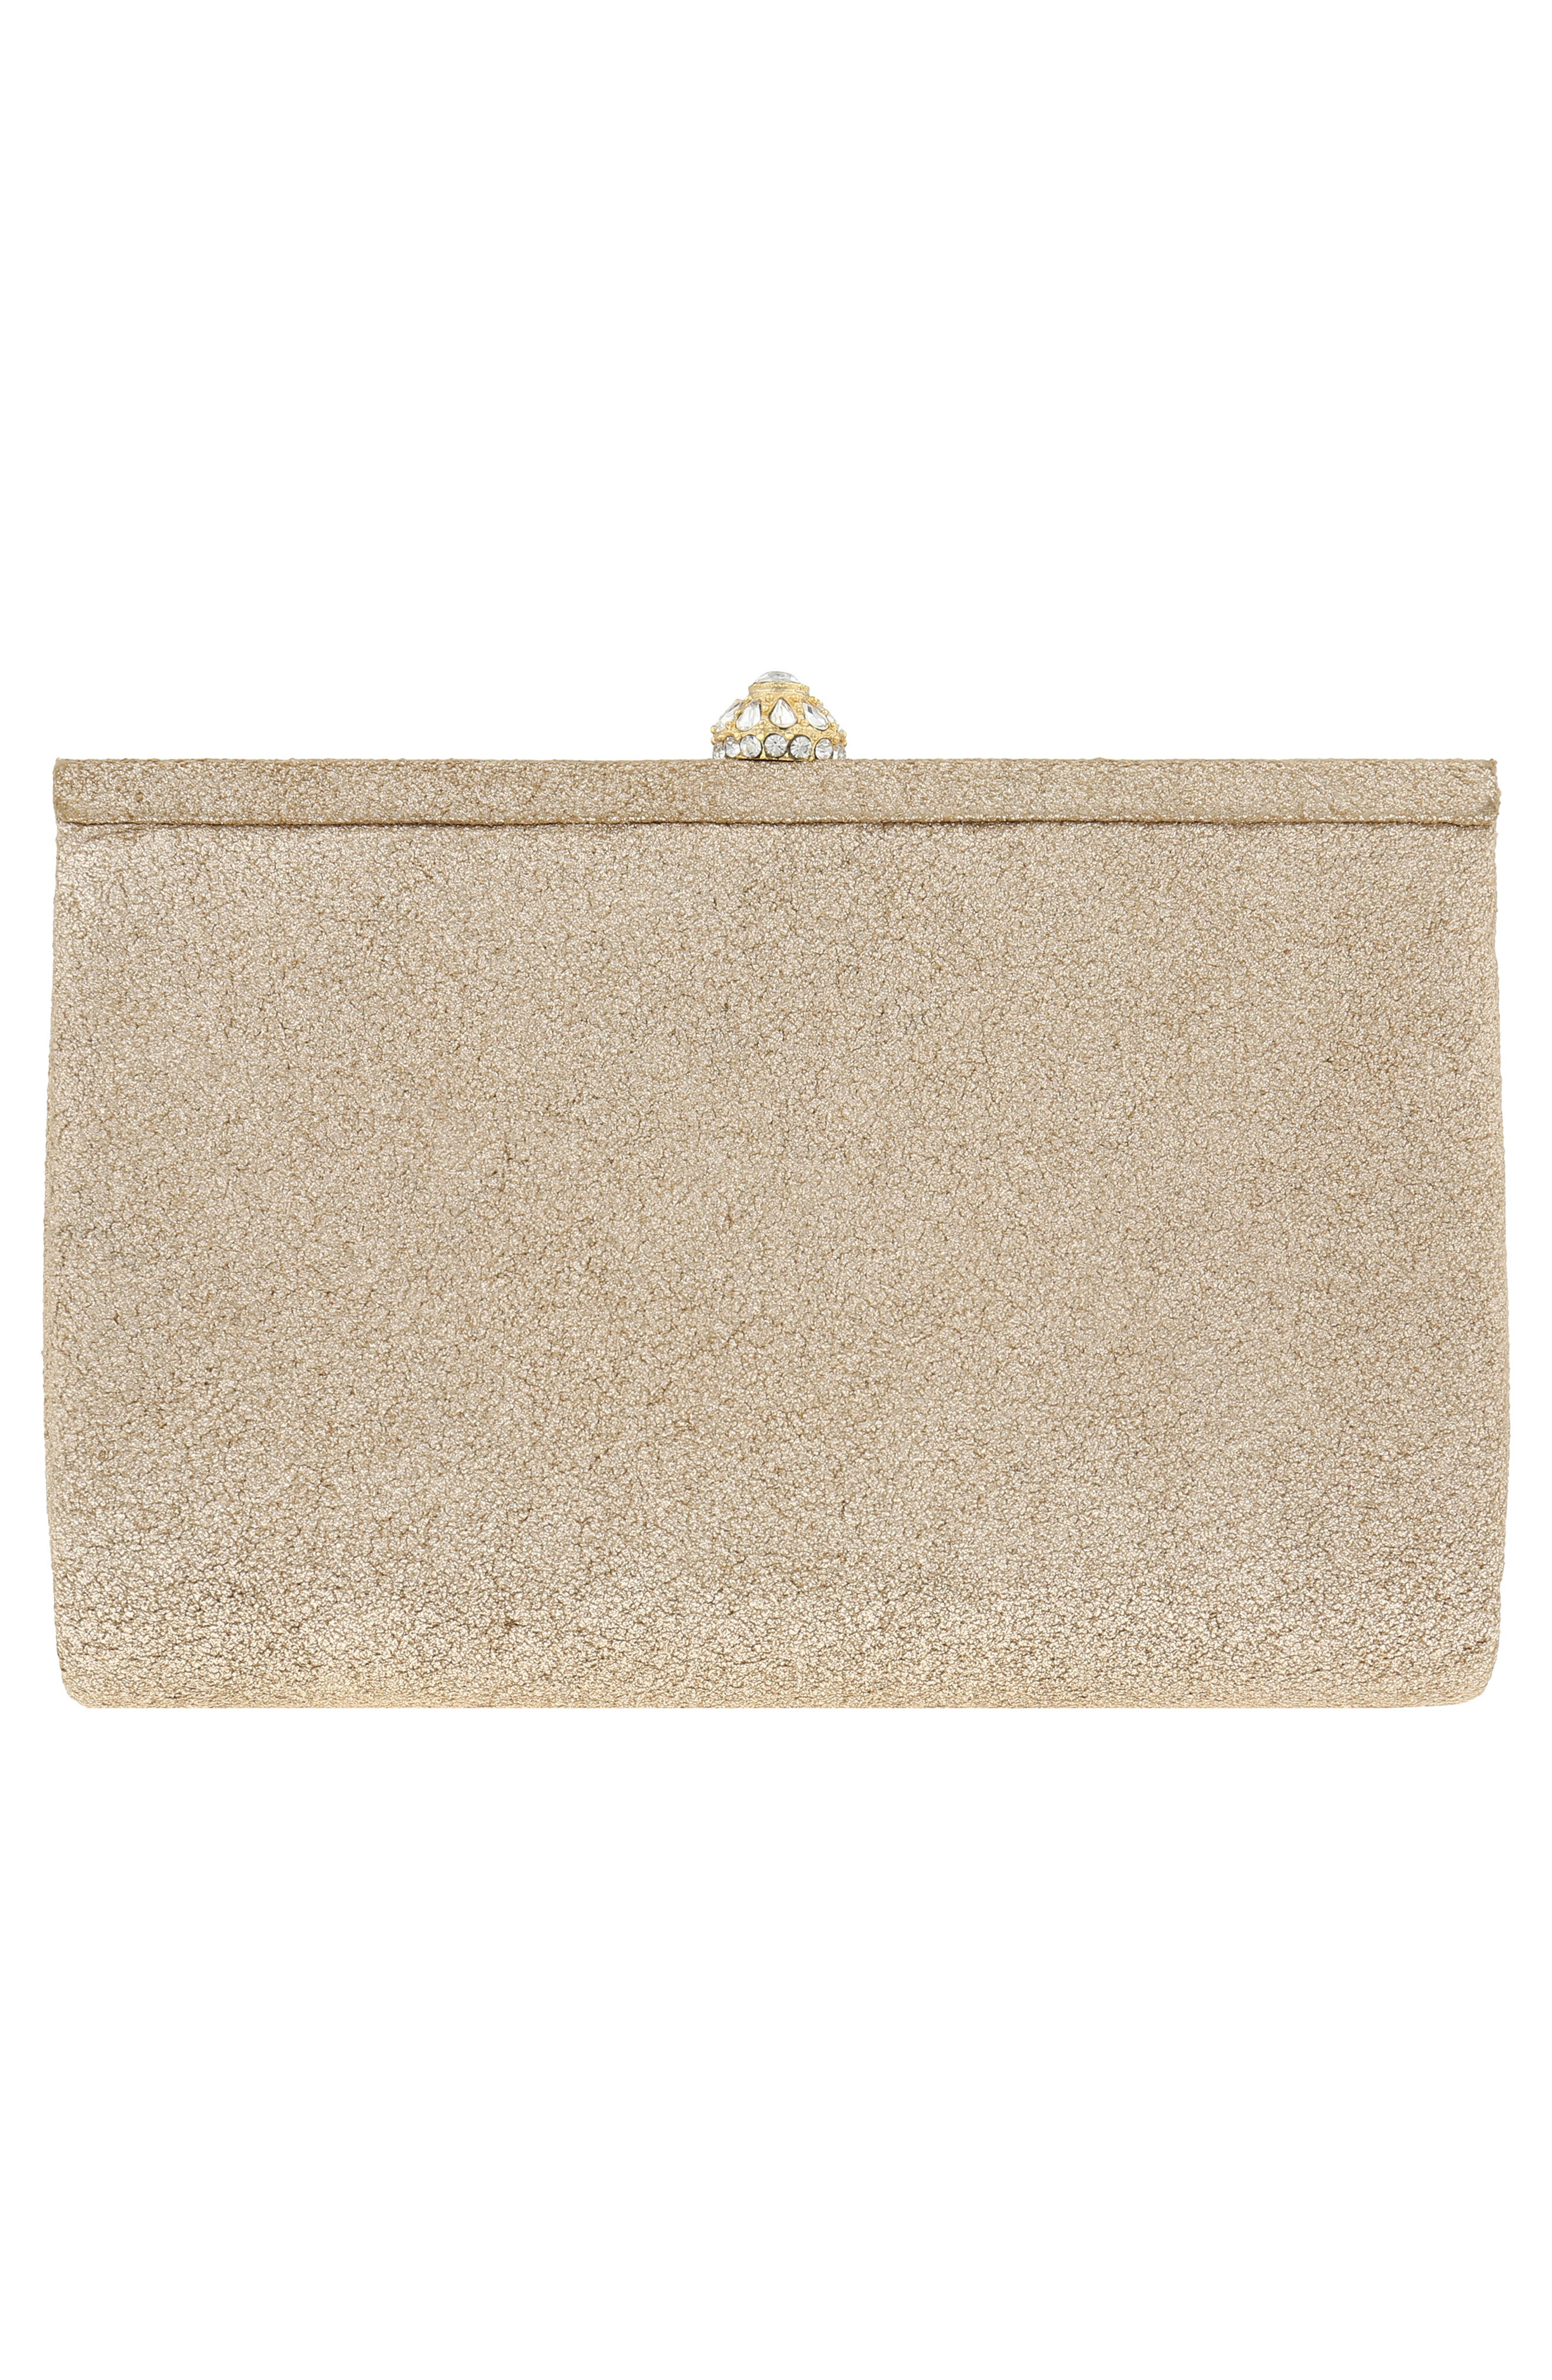 Galaxy Embellished Clutch,                             Alternate thumbnail 2, color,                             Platino